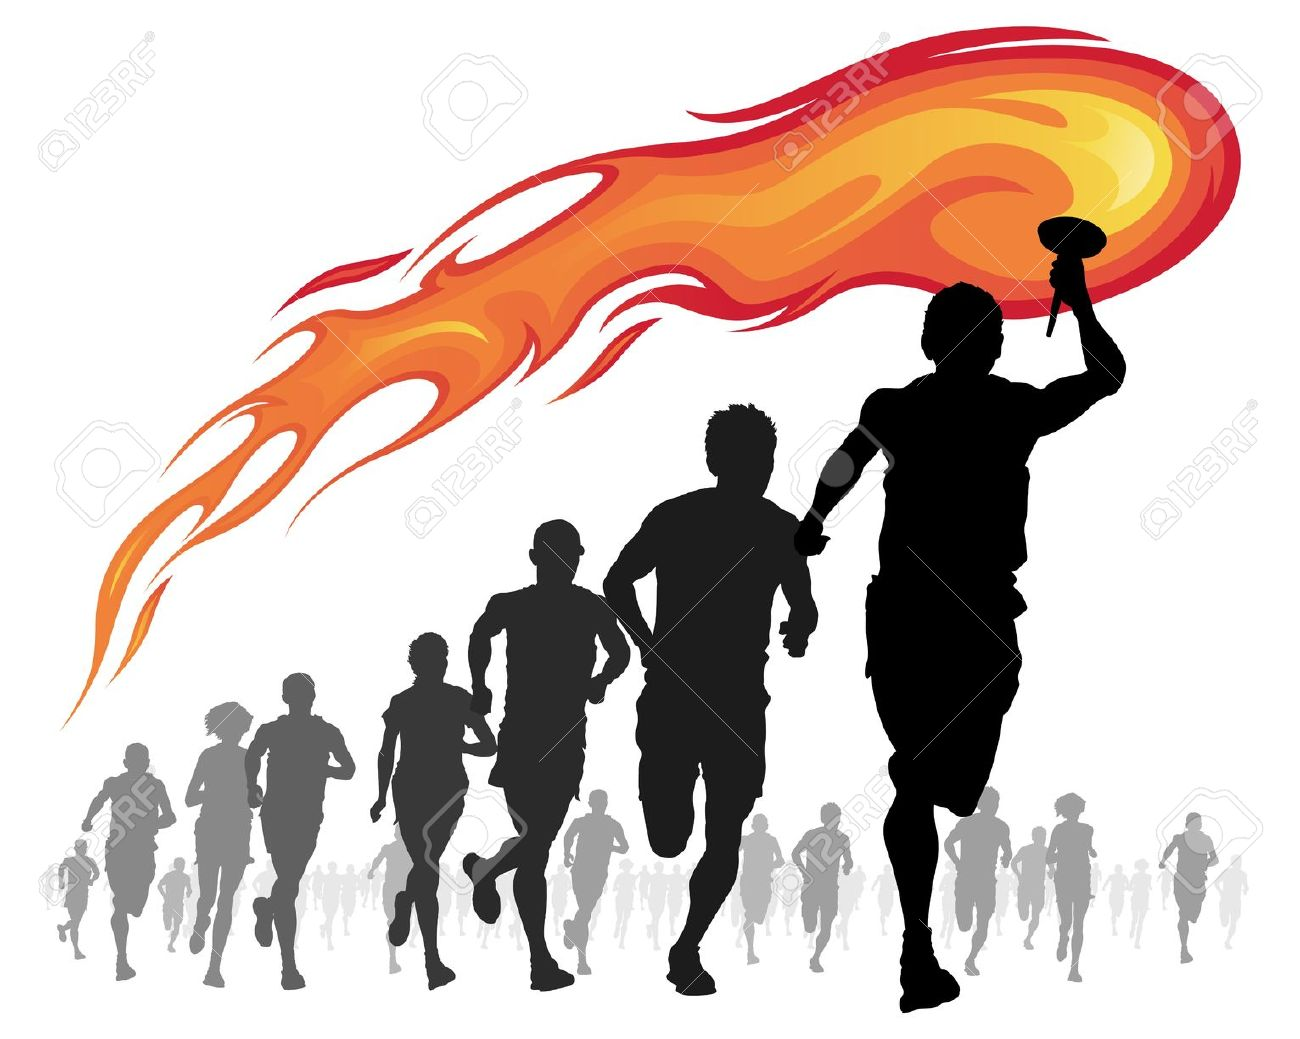 Olympics torch clipart.